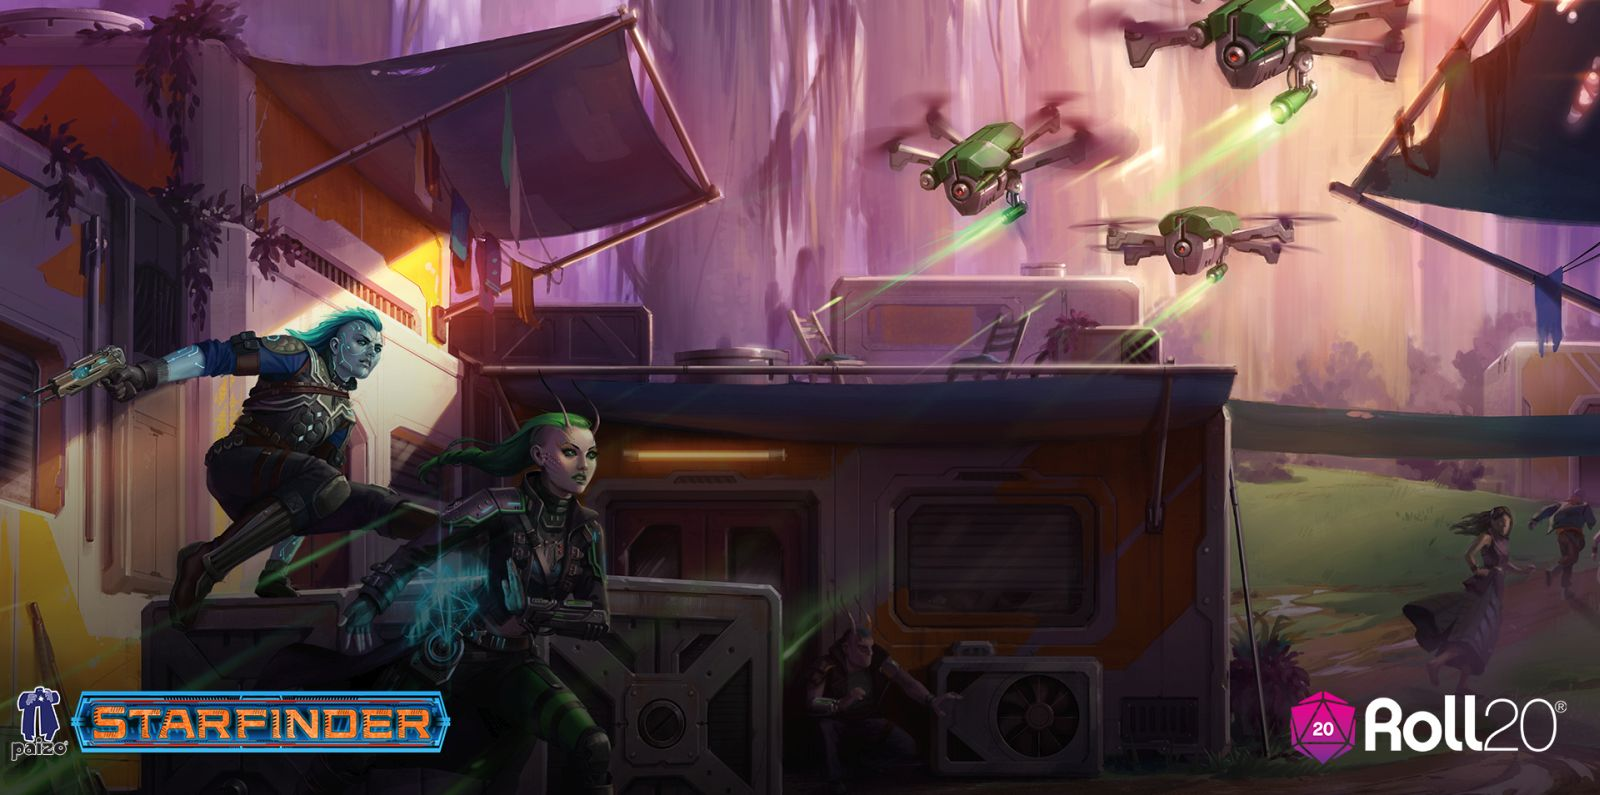 STARFINDER's AGAINST THE AEON THRONE Comes to Roll20